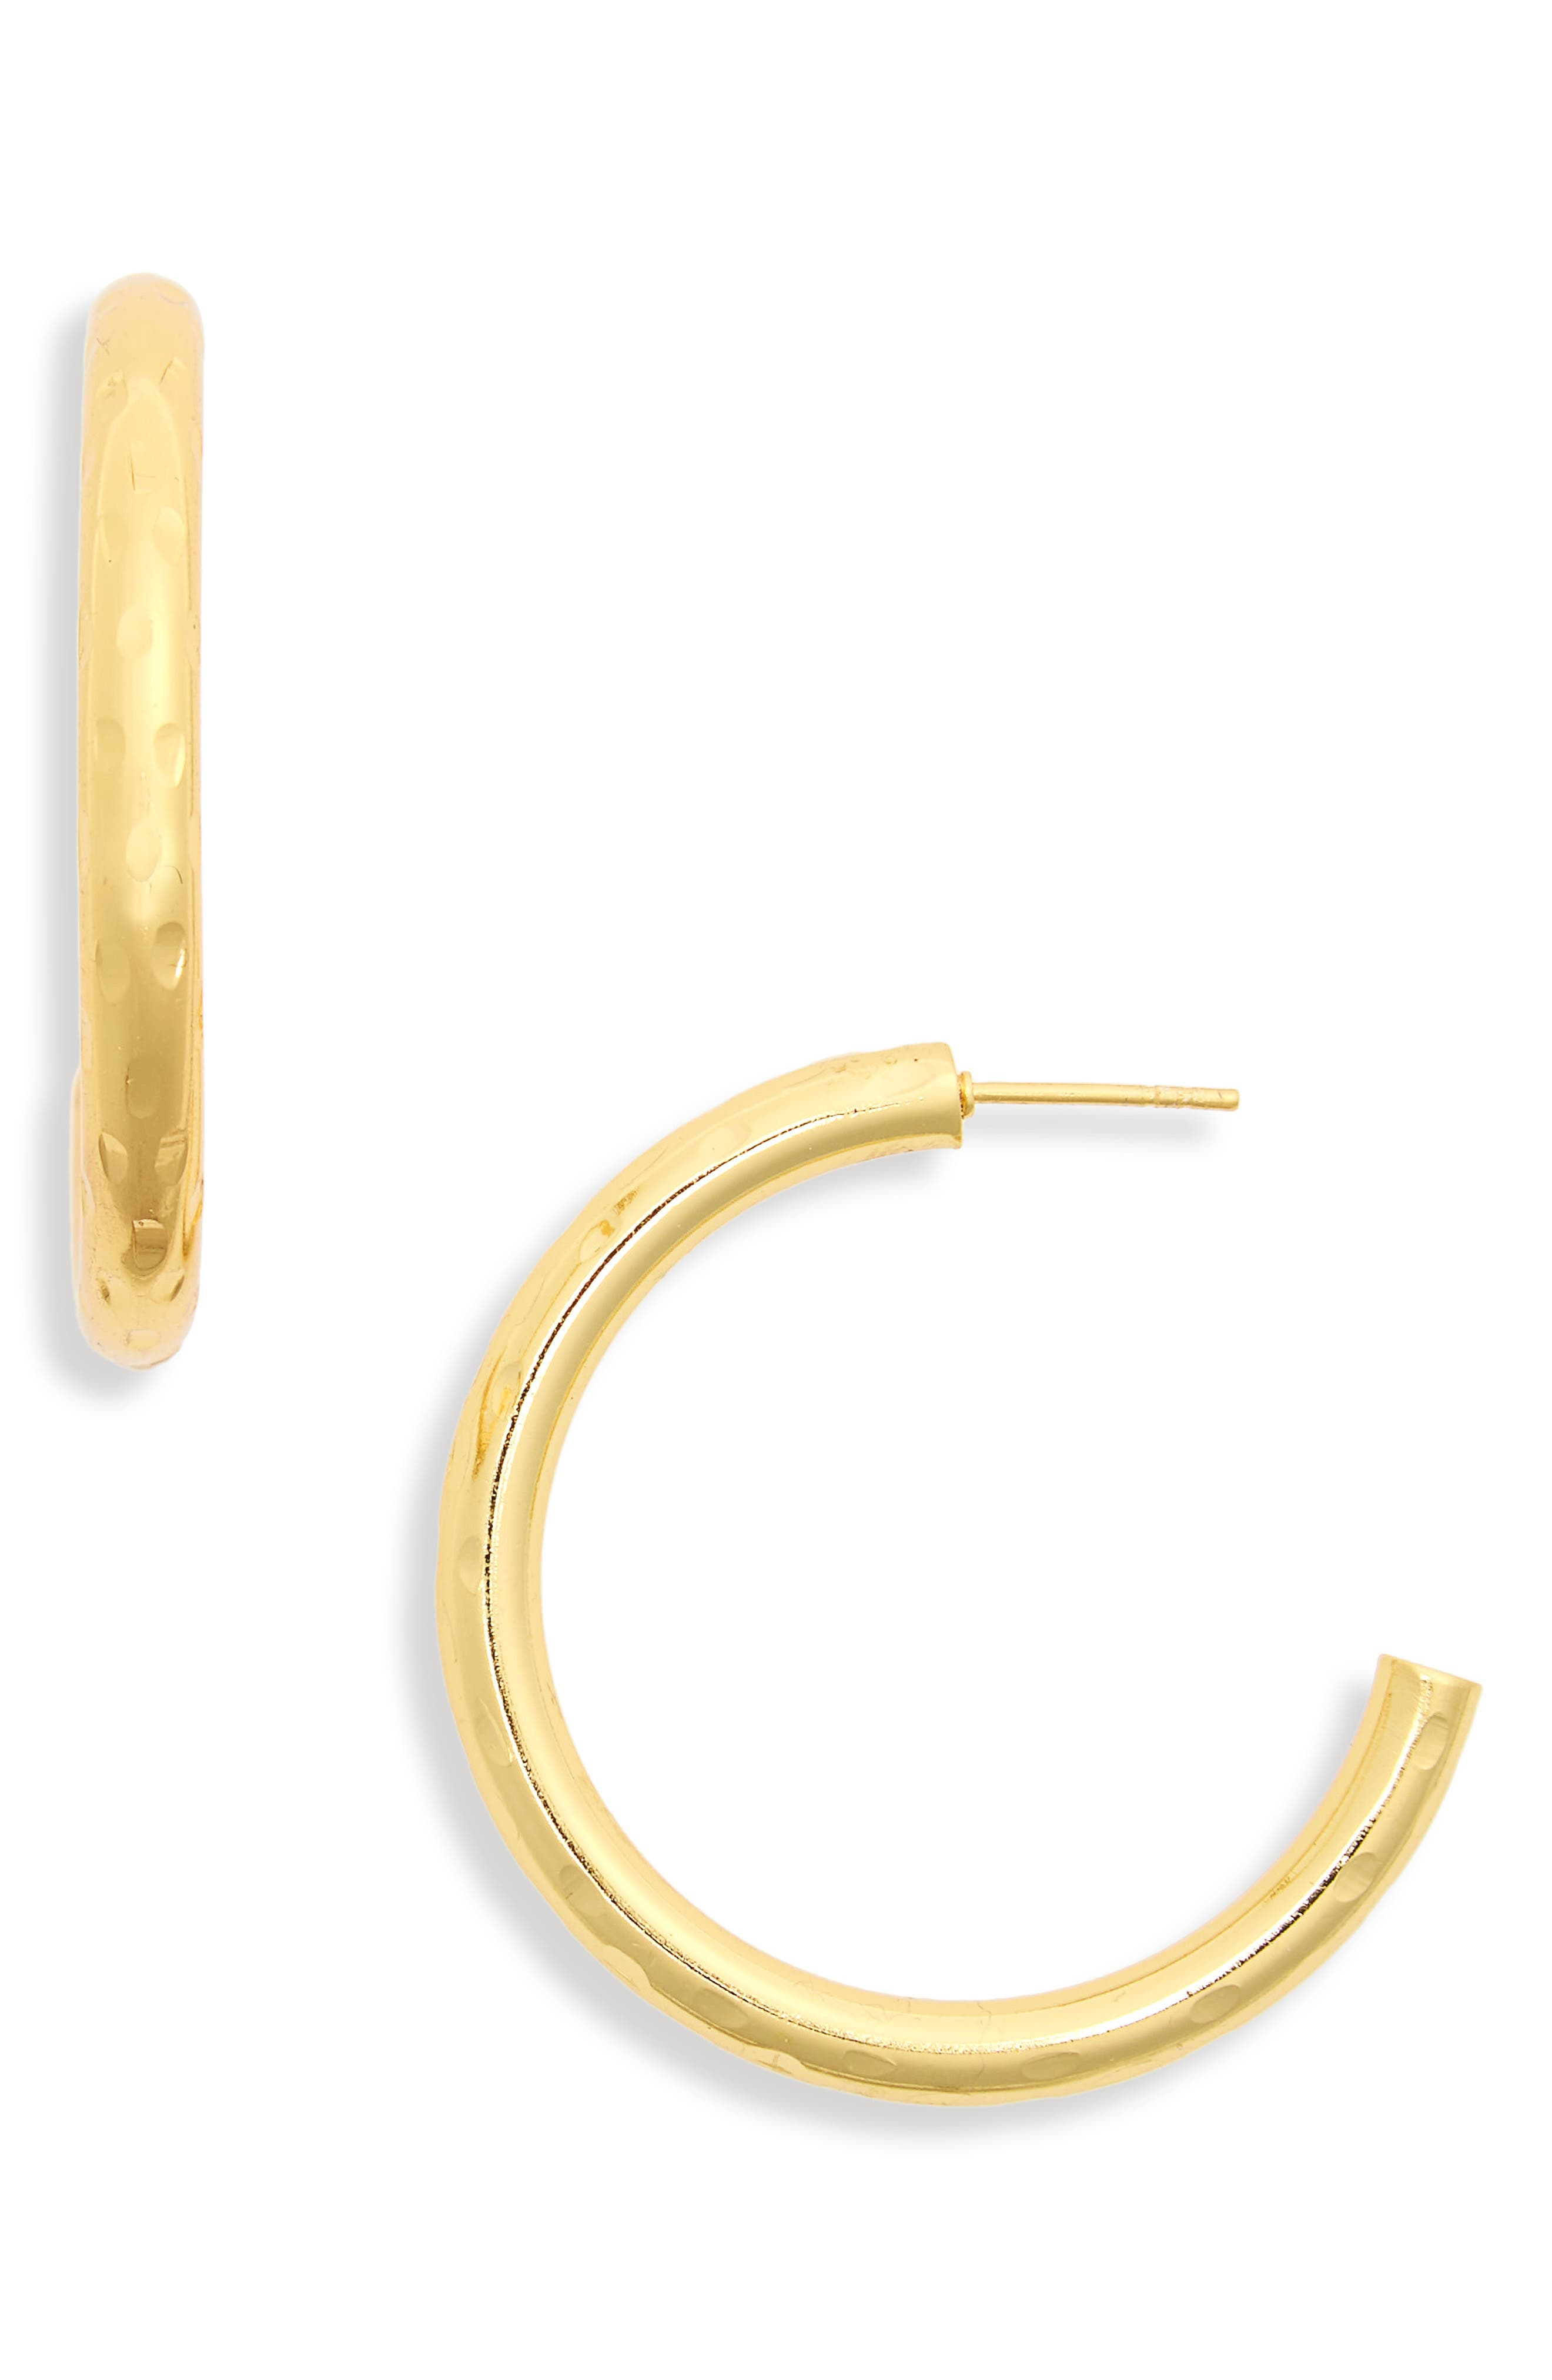 Hammered Tube Hoop Earrings,                             Main thumbnail 1, color,                             Gold